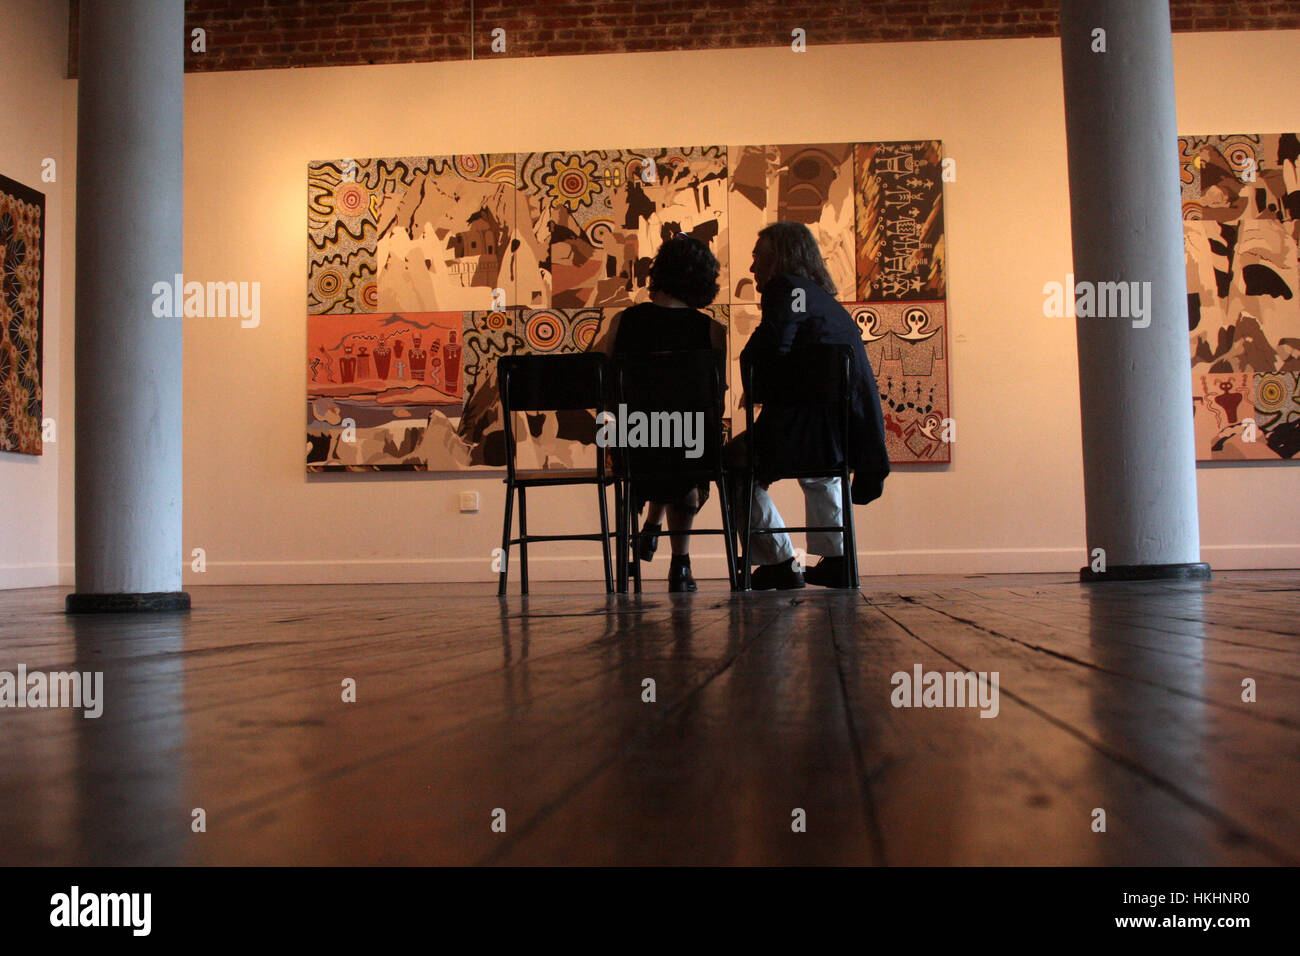 Man and woman in art gallery - Stock Image